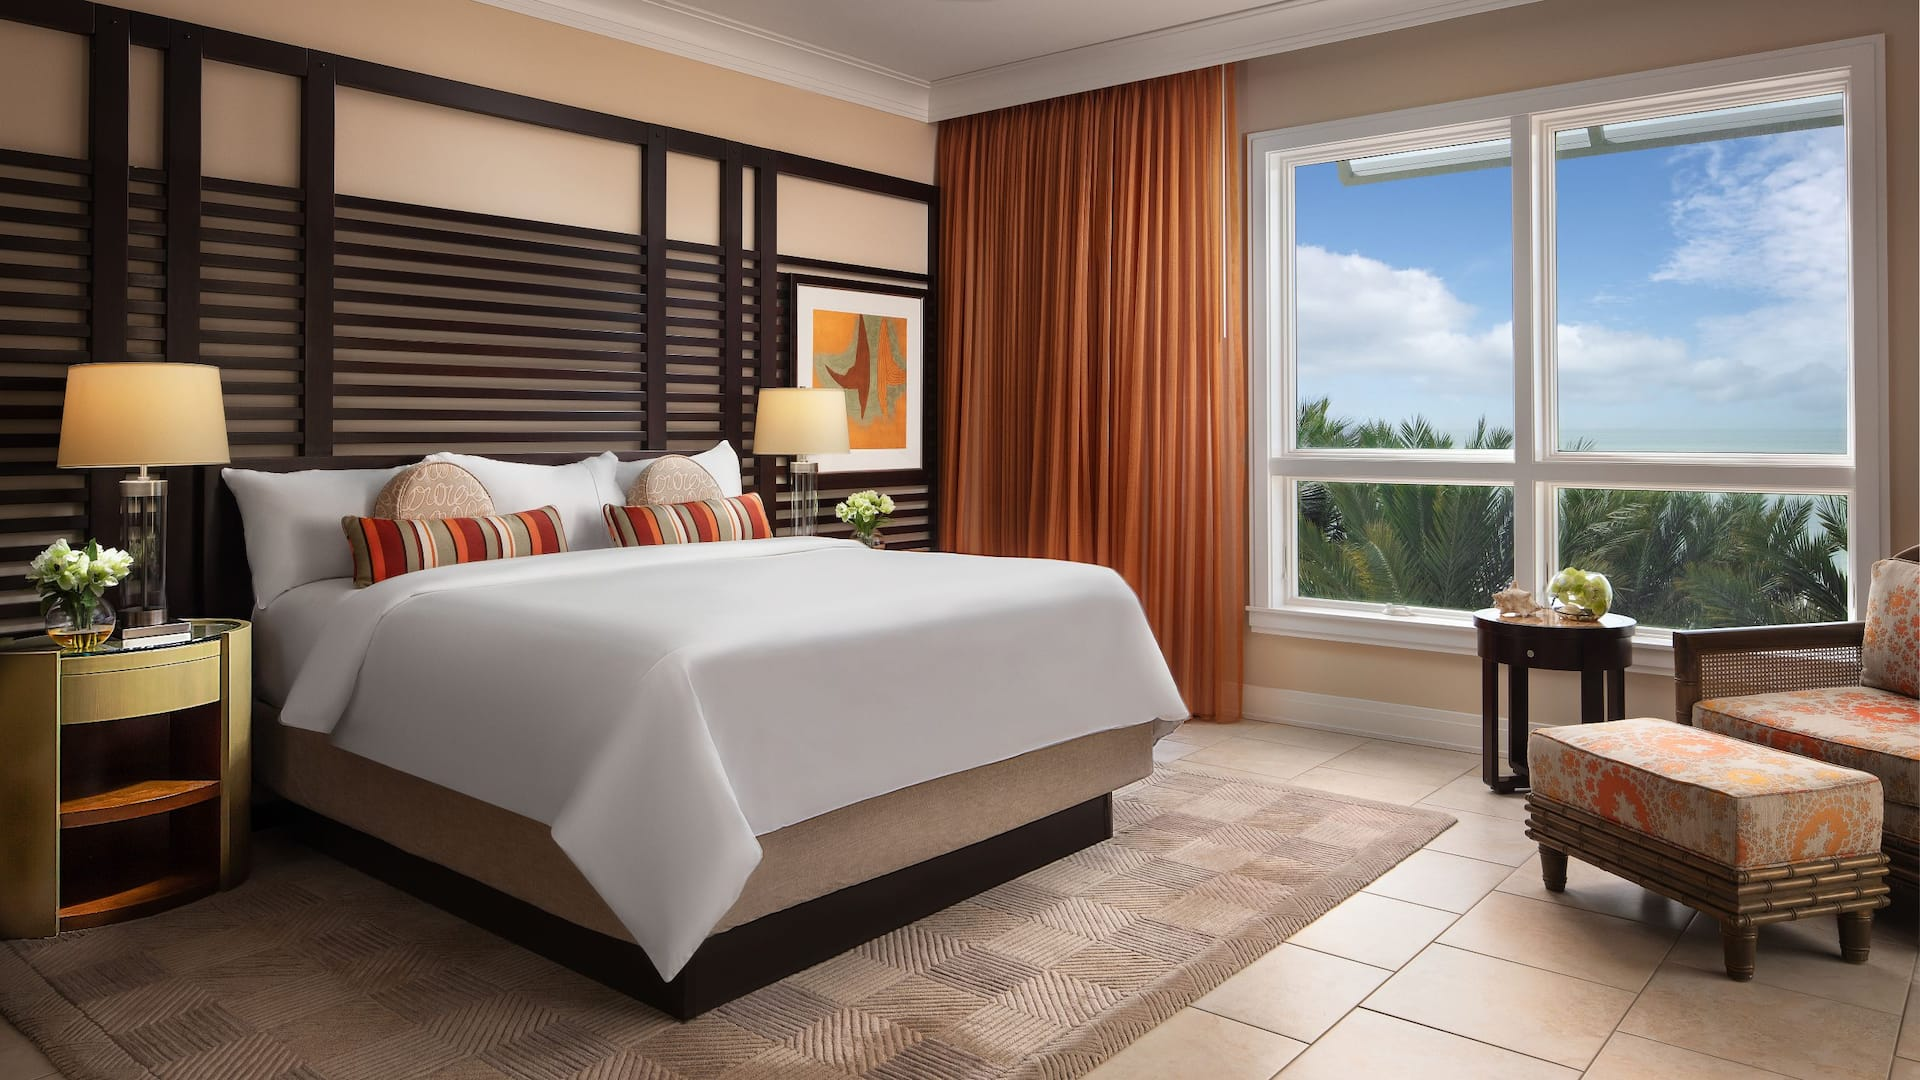 Hyatt Residence Club Siesta Key Master Bedroom